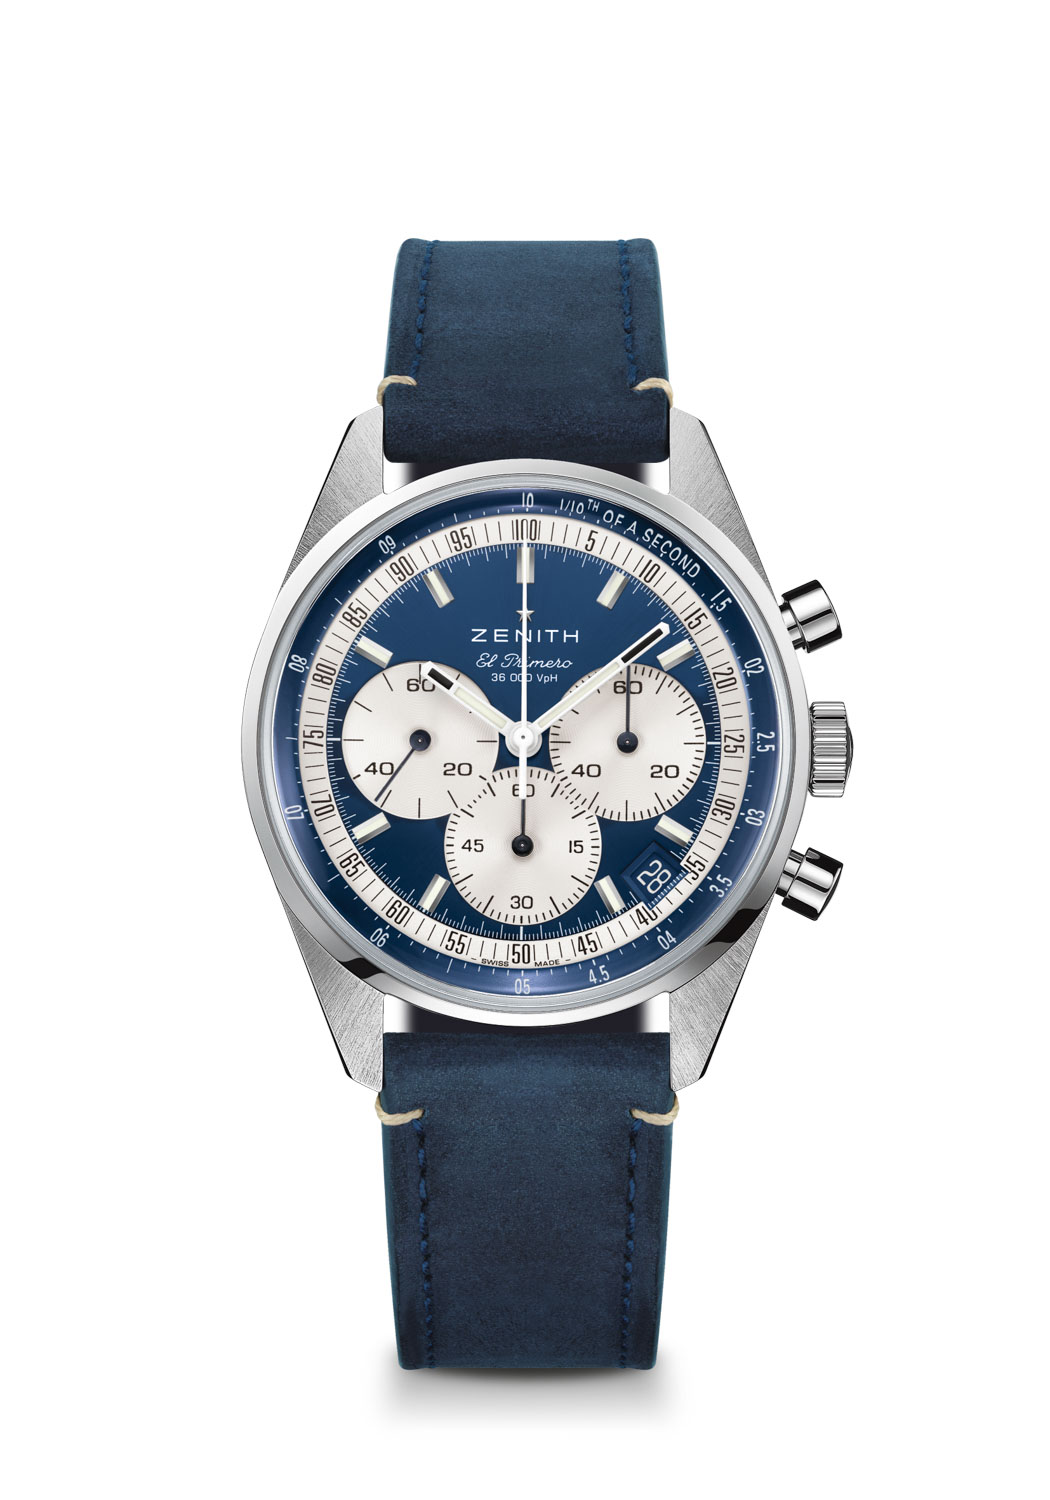 The Zenith Chronomaster Original Boutique Edition seen here on the blue calfskin leather strap